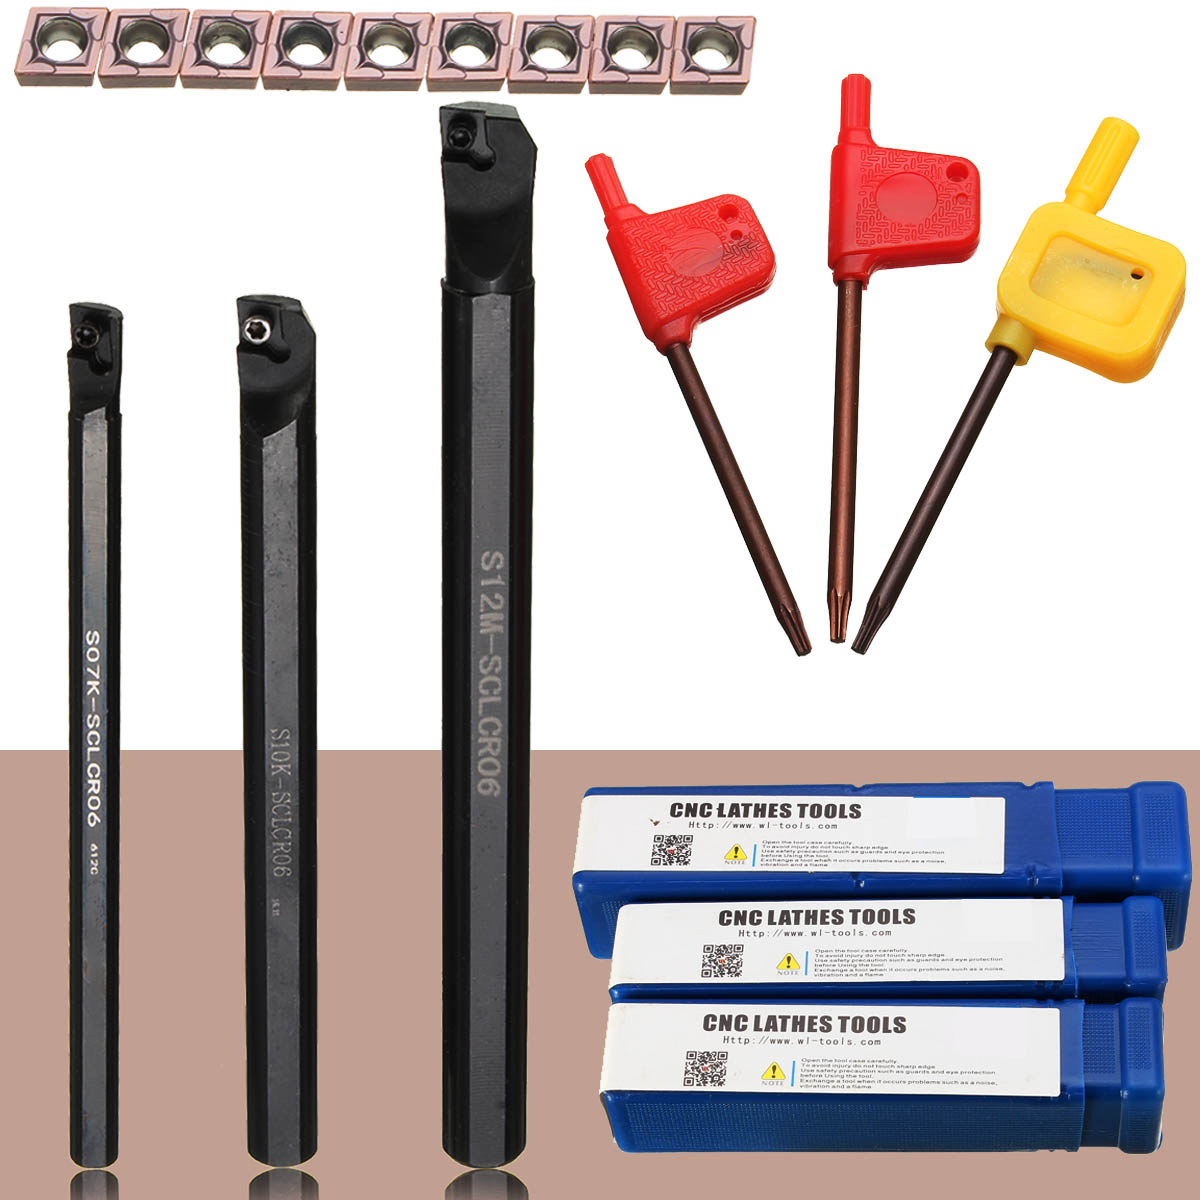 1pcs S07K-SCLCR06+1pcs S10K-SCLCR06+1pcs S12M-SCLCR06 Lathe Holder Turning Tool Boring Bar 7/10/12mm + 10pcs CCMT0602 Inserts(China)